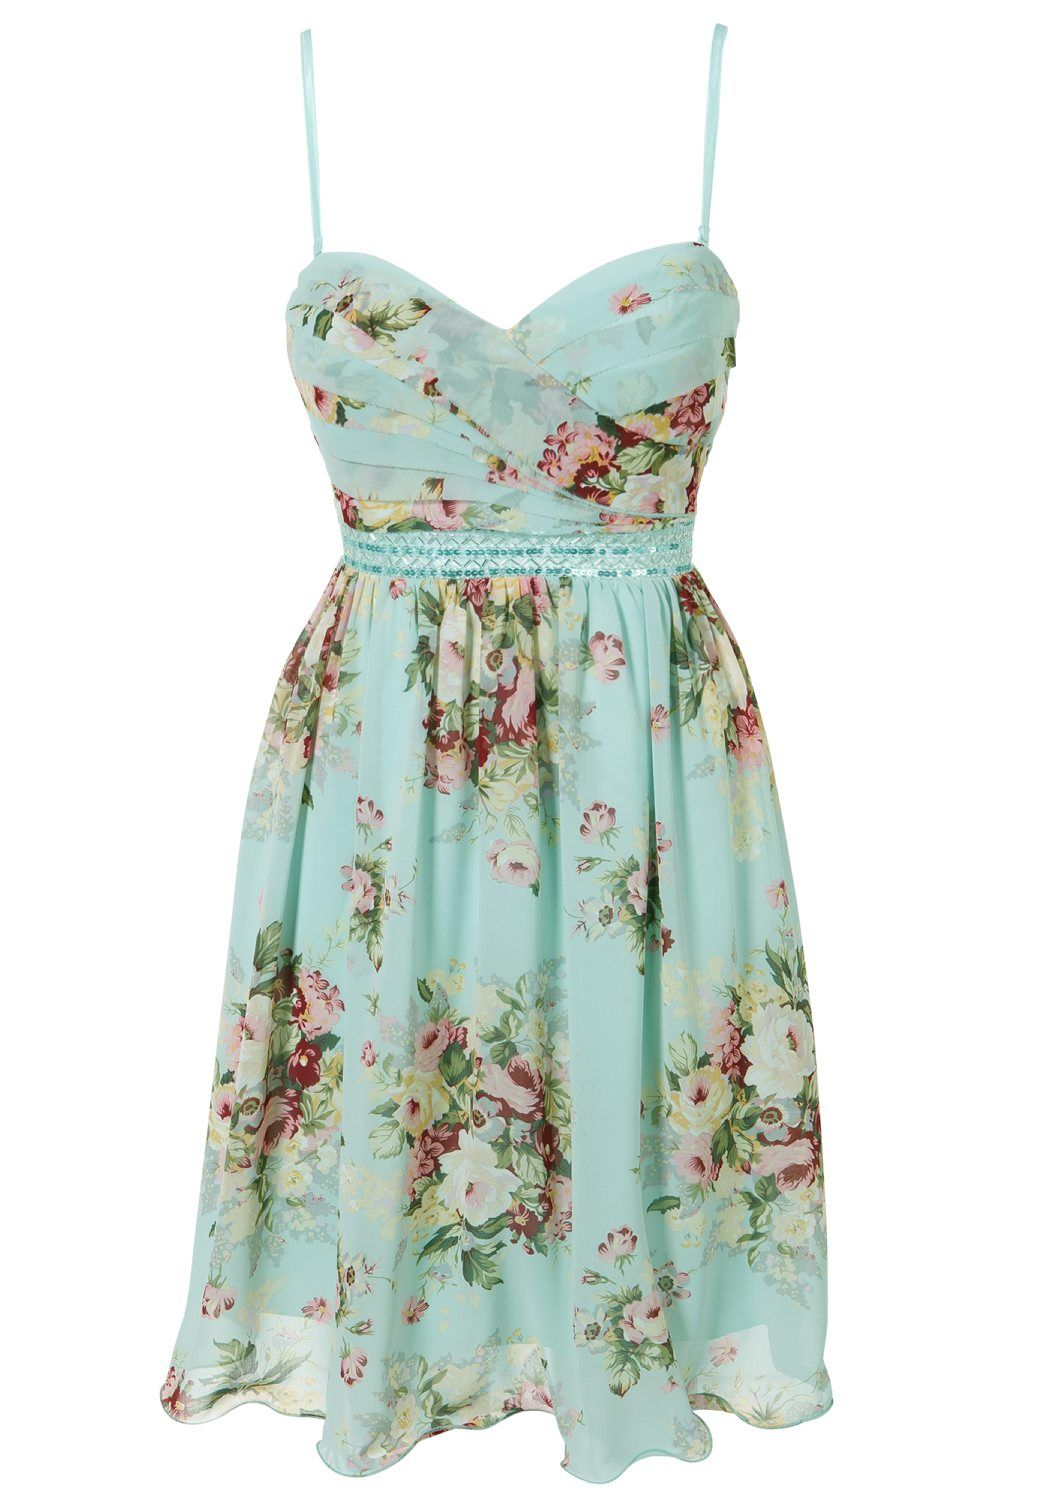 Clothing at Tesco | Ice Blossom Pastel floral dress > dresses ...